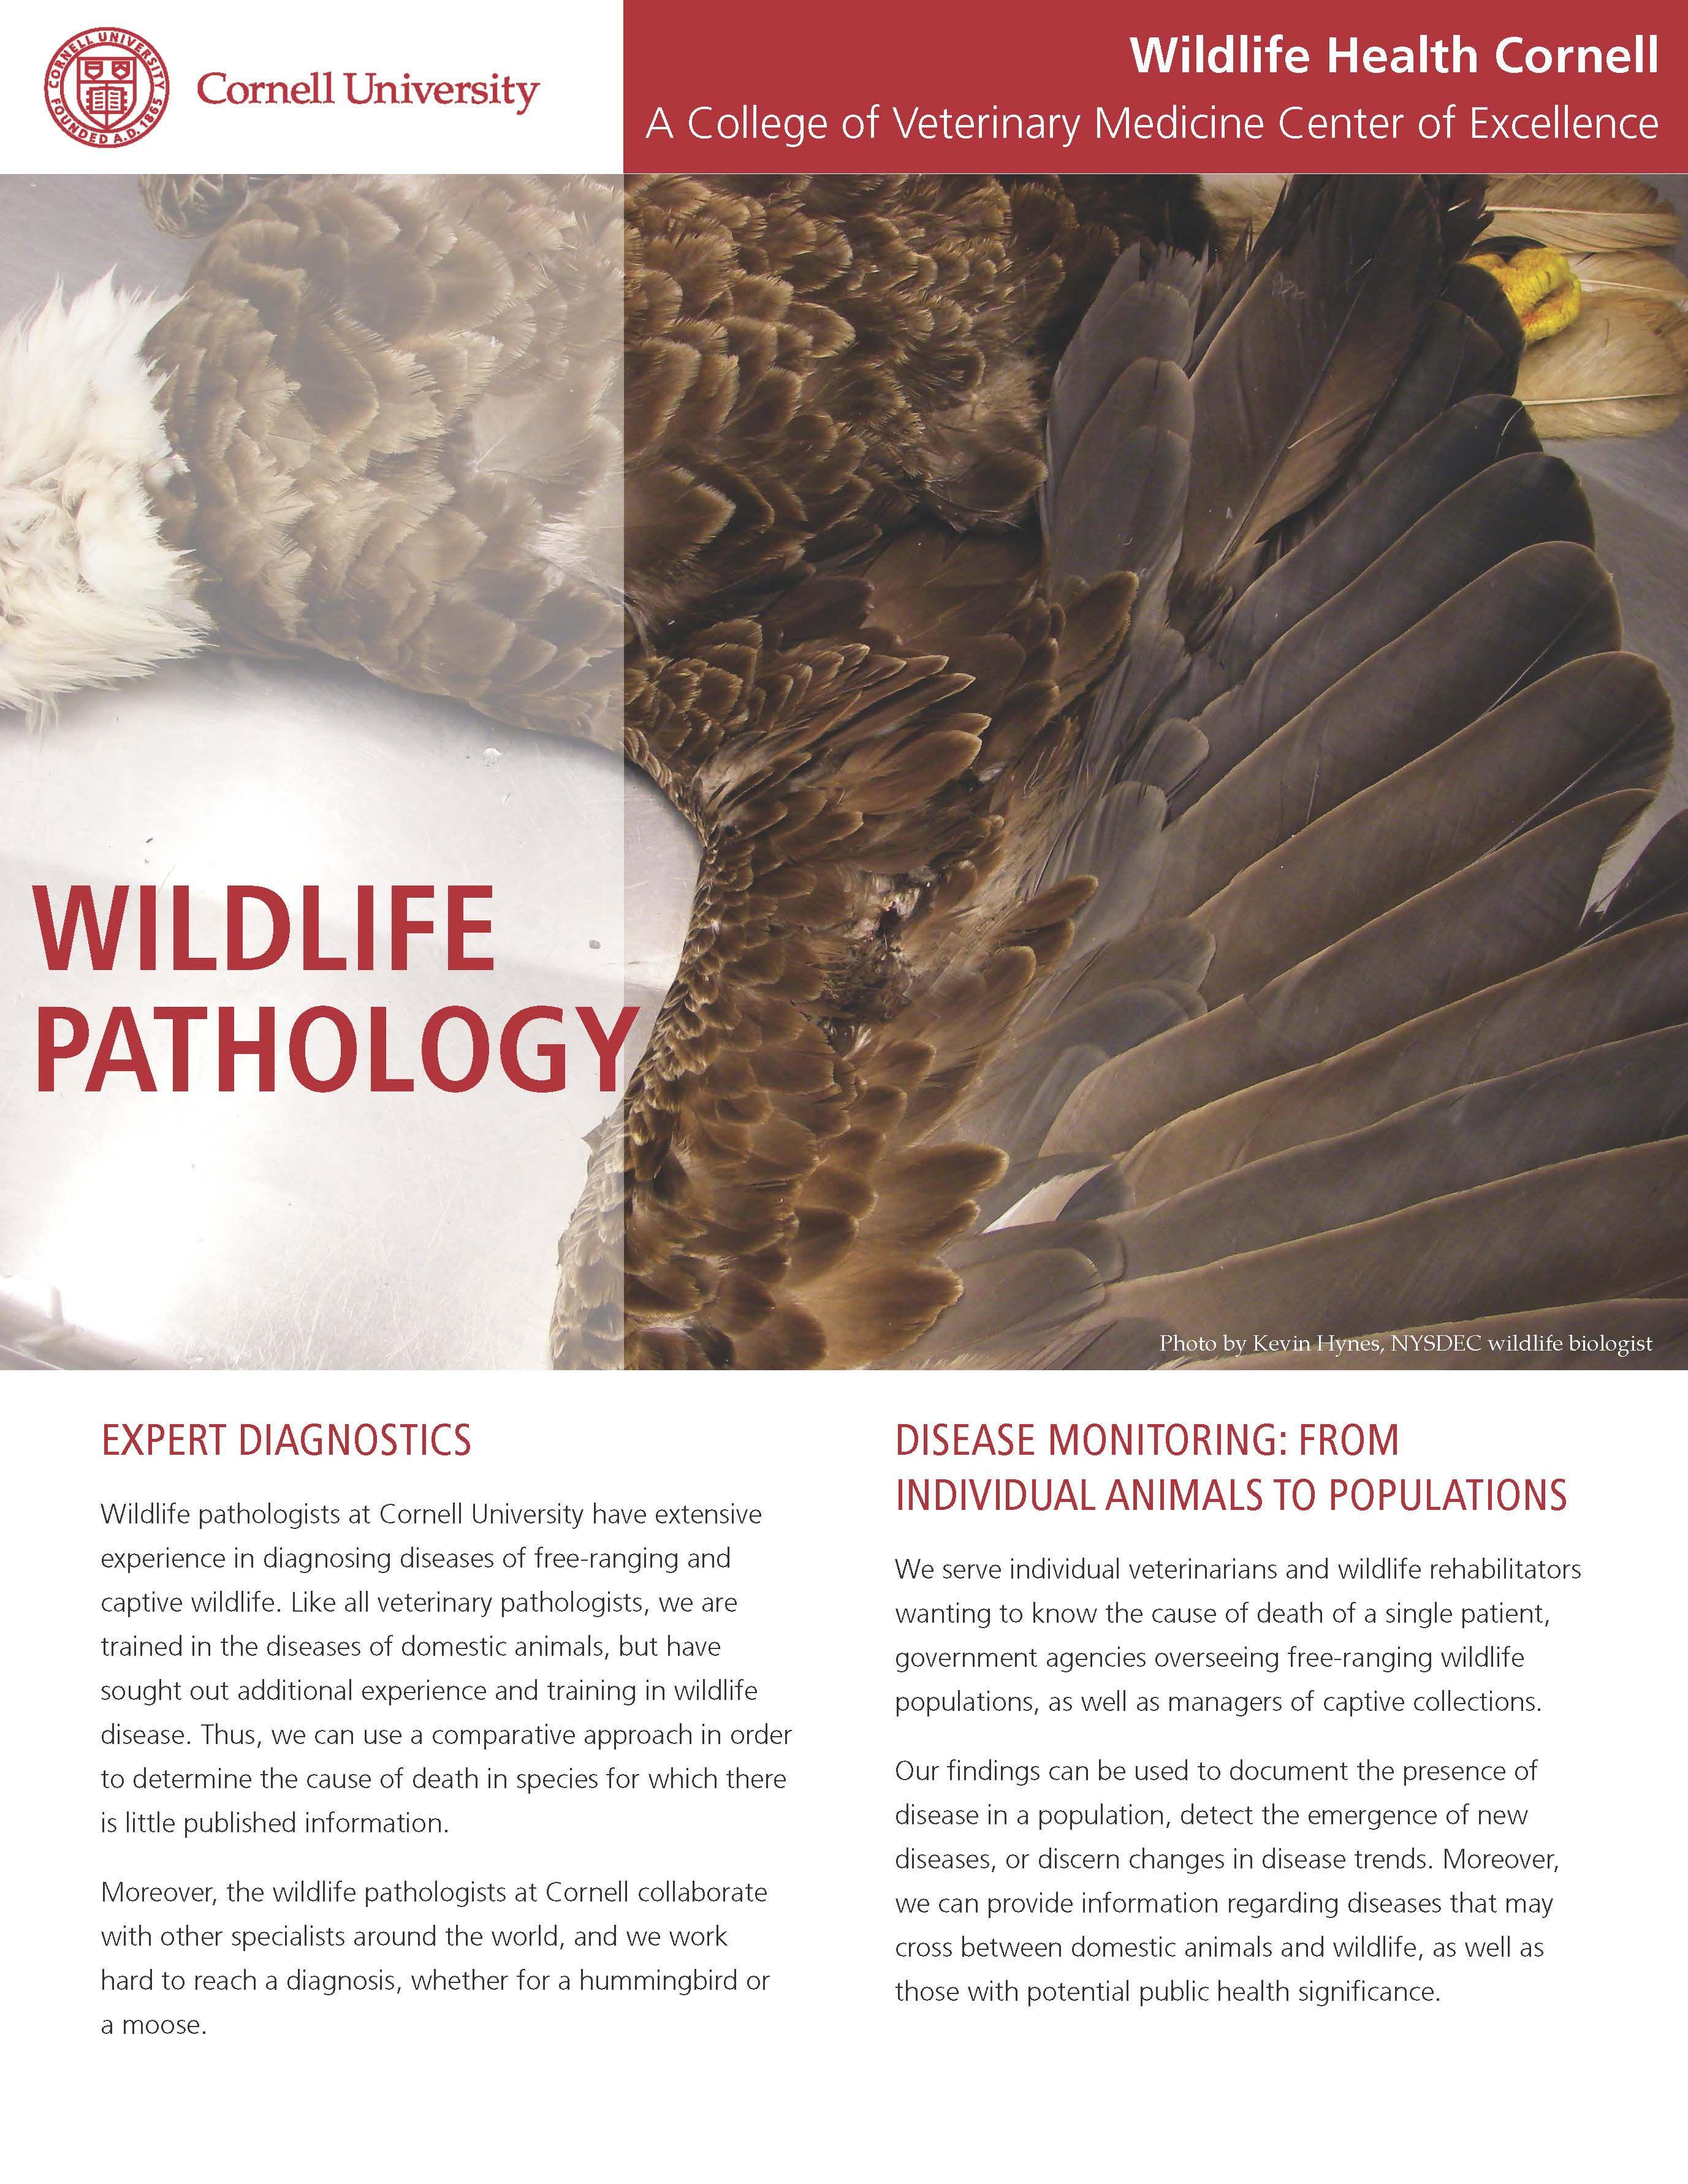 Wildlife Pathology article cover